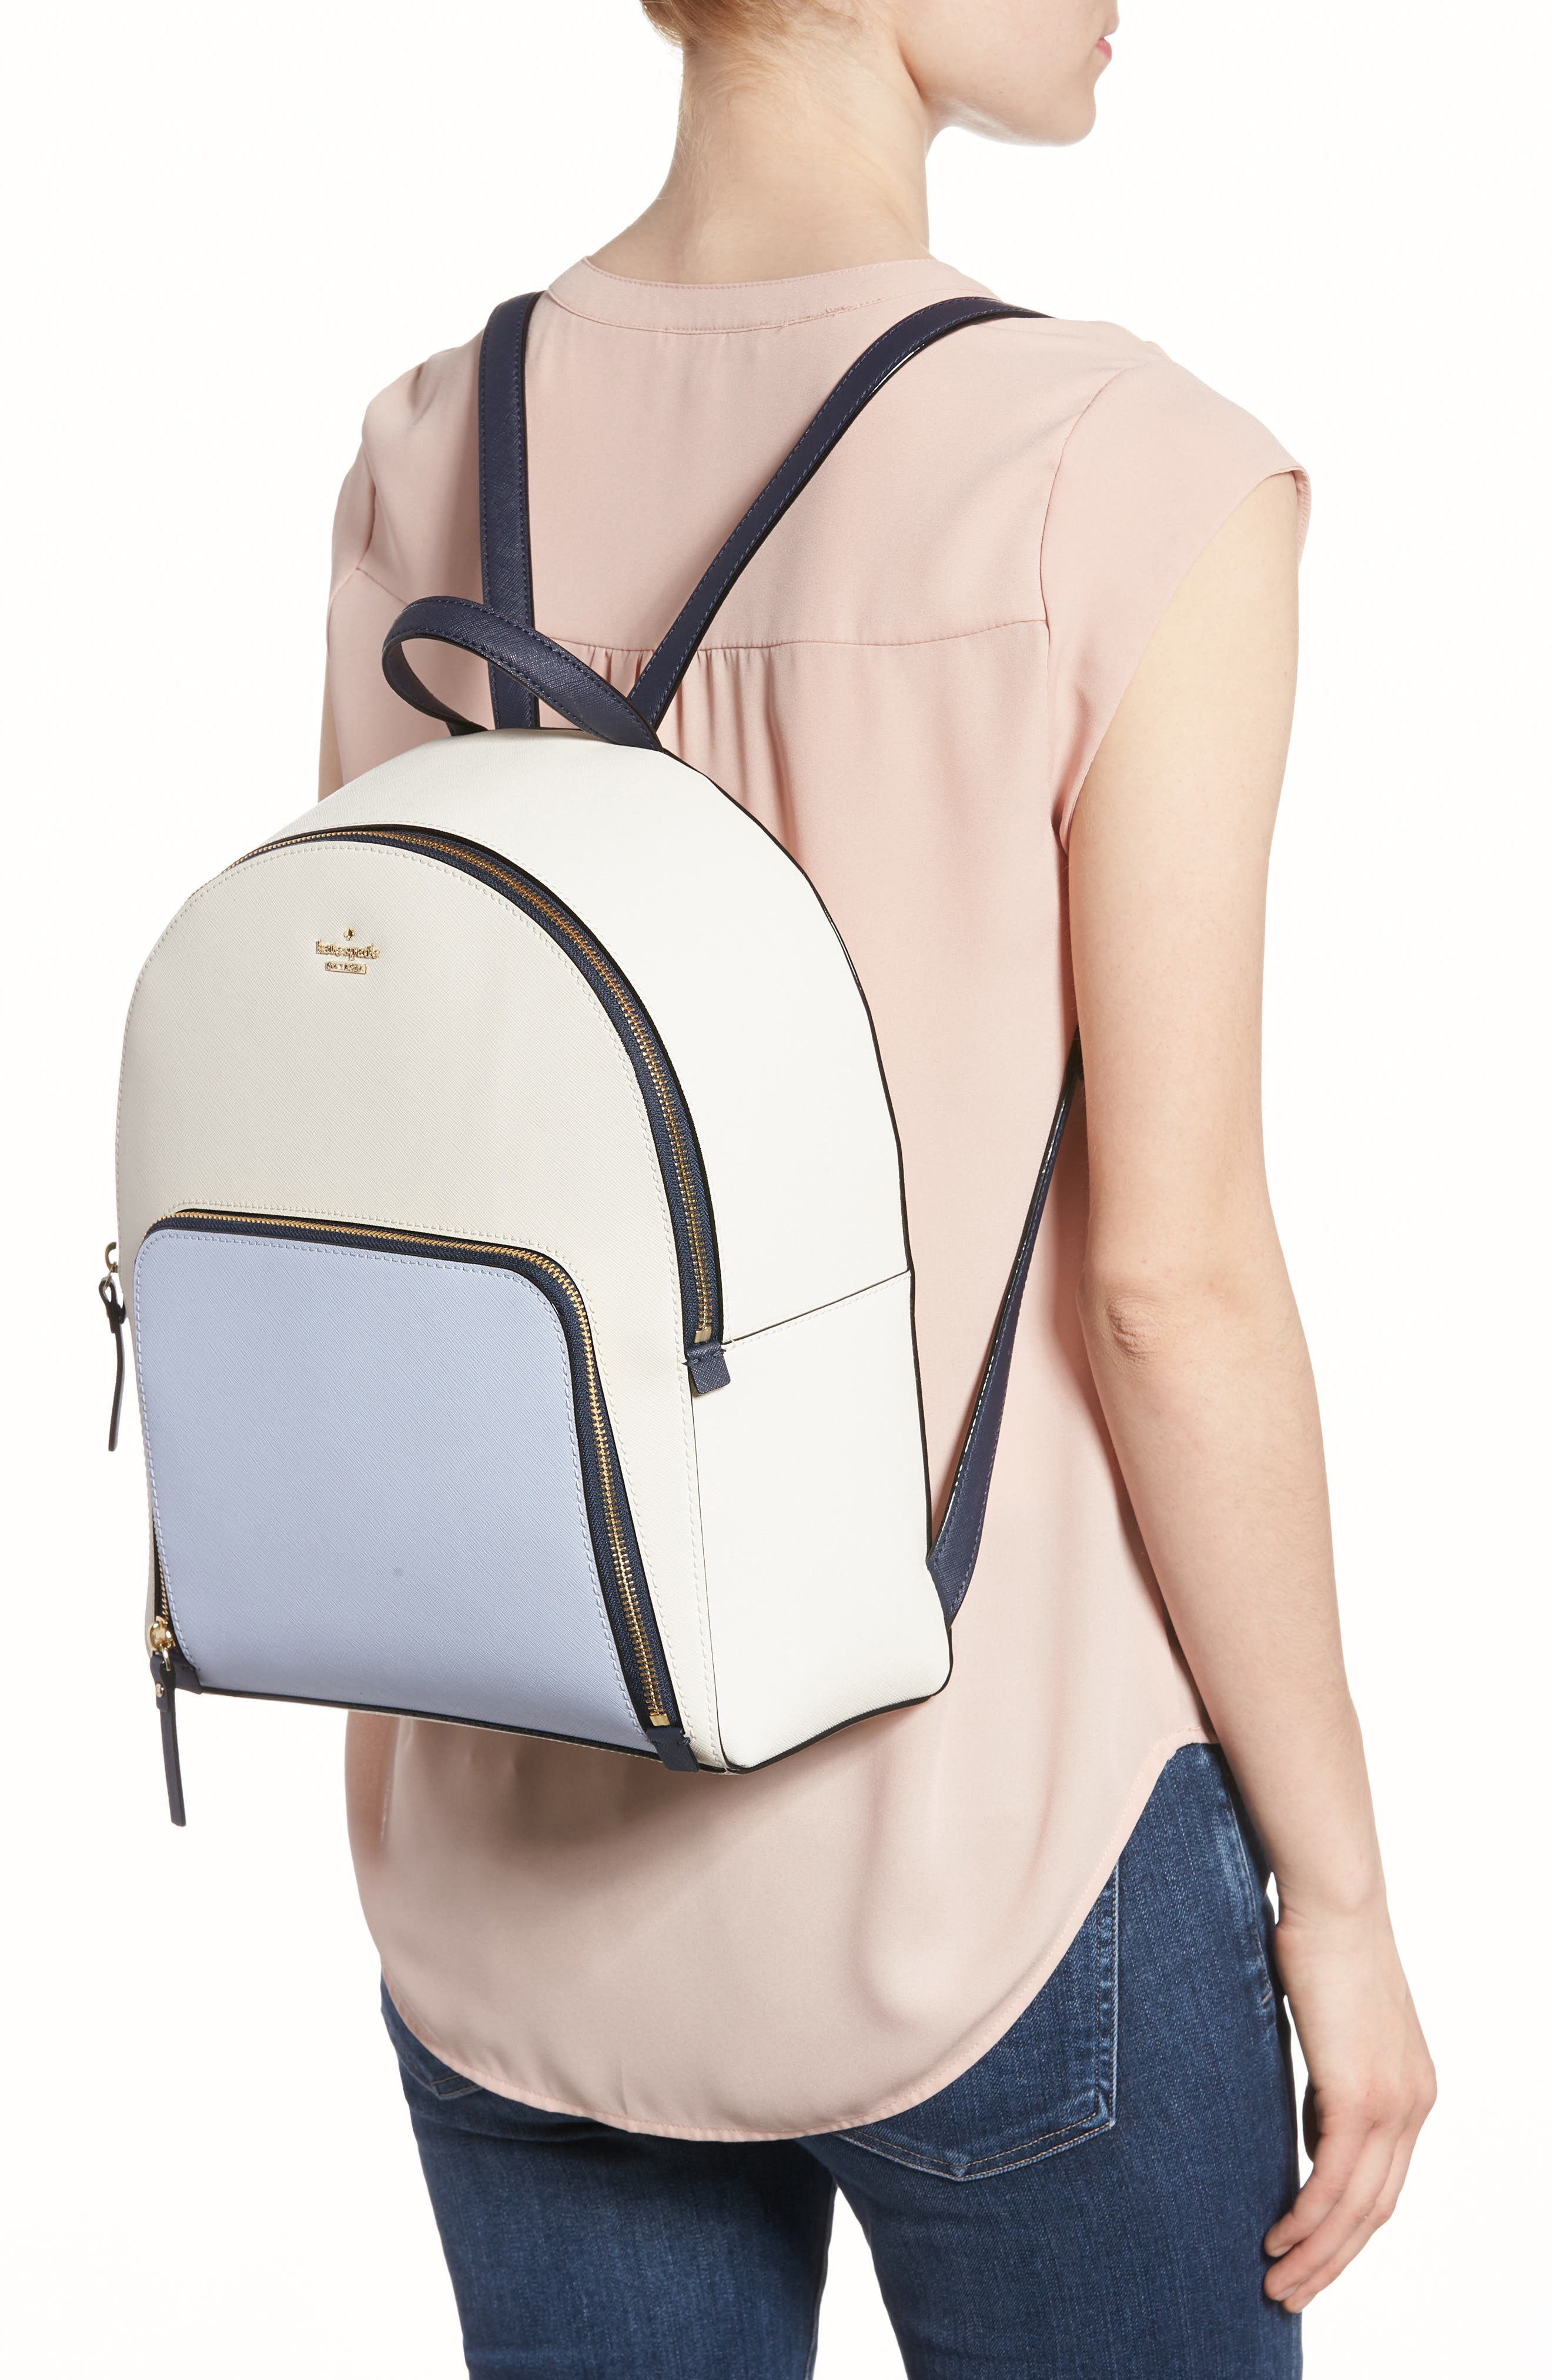 cameron street – hartley leather backpack,                             Alternate thumbnail 2, color,                             Cement/ Morning Multi